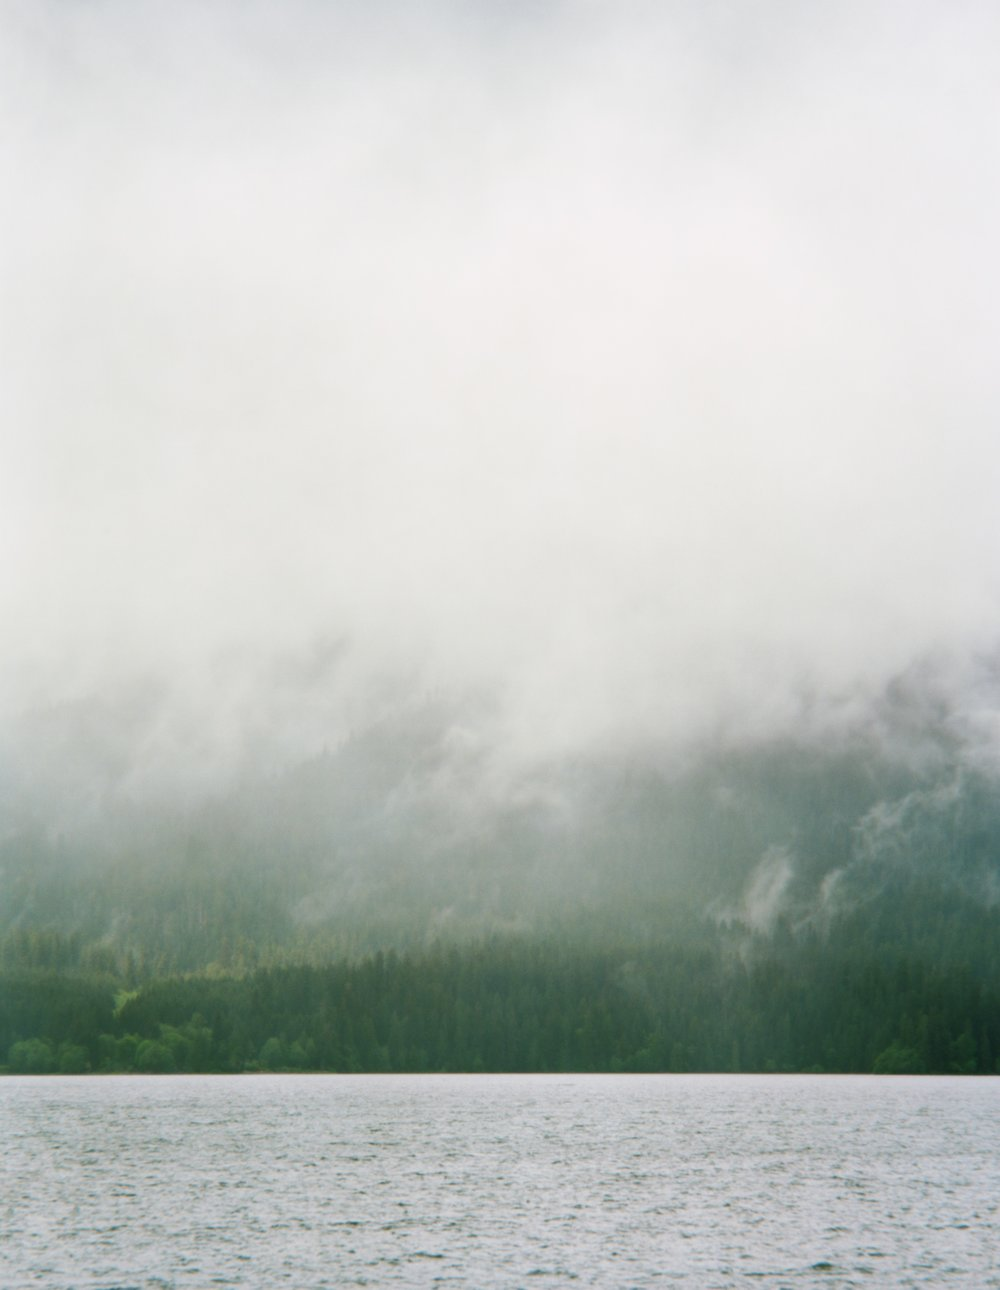 Untitled (Ithaka 60), 2008 / archival pigment print, 60 x 48 inches, edition of 3 plus 2 AP